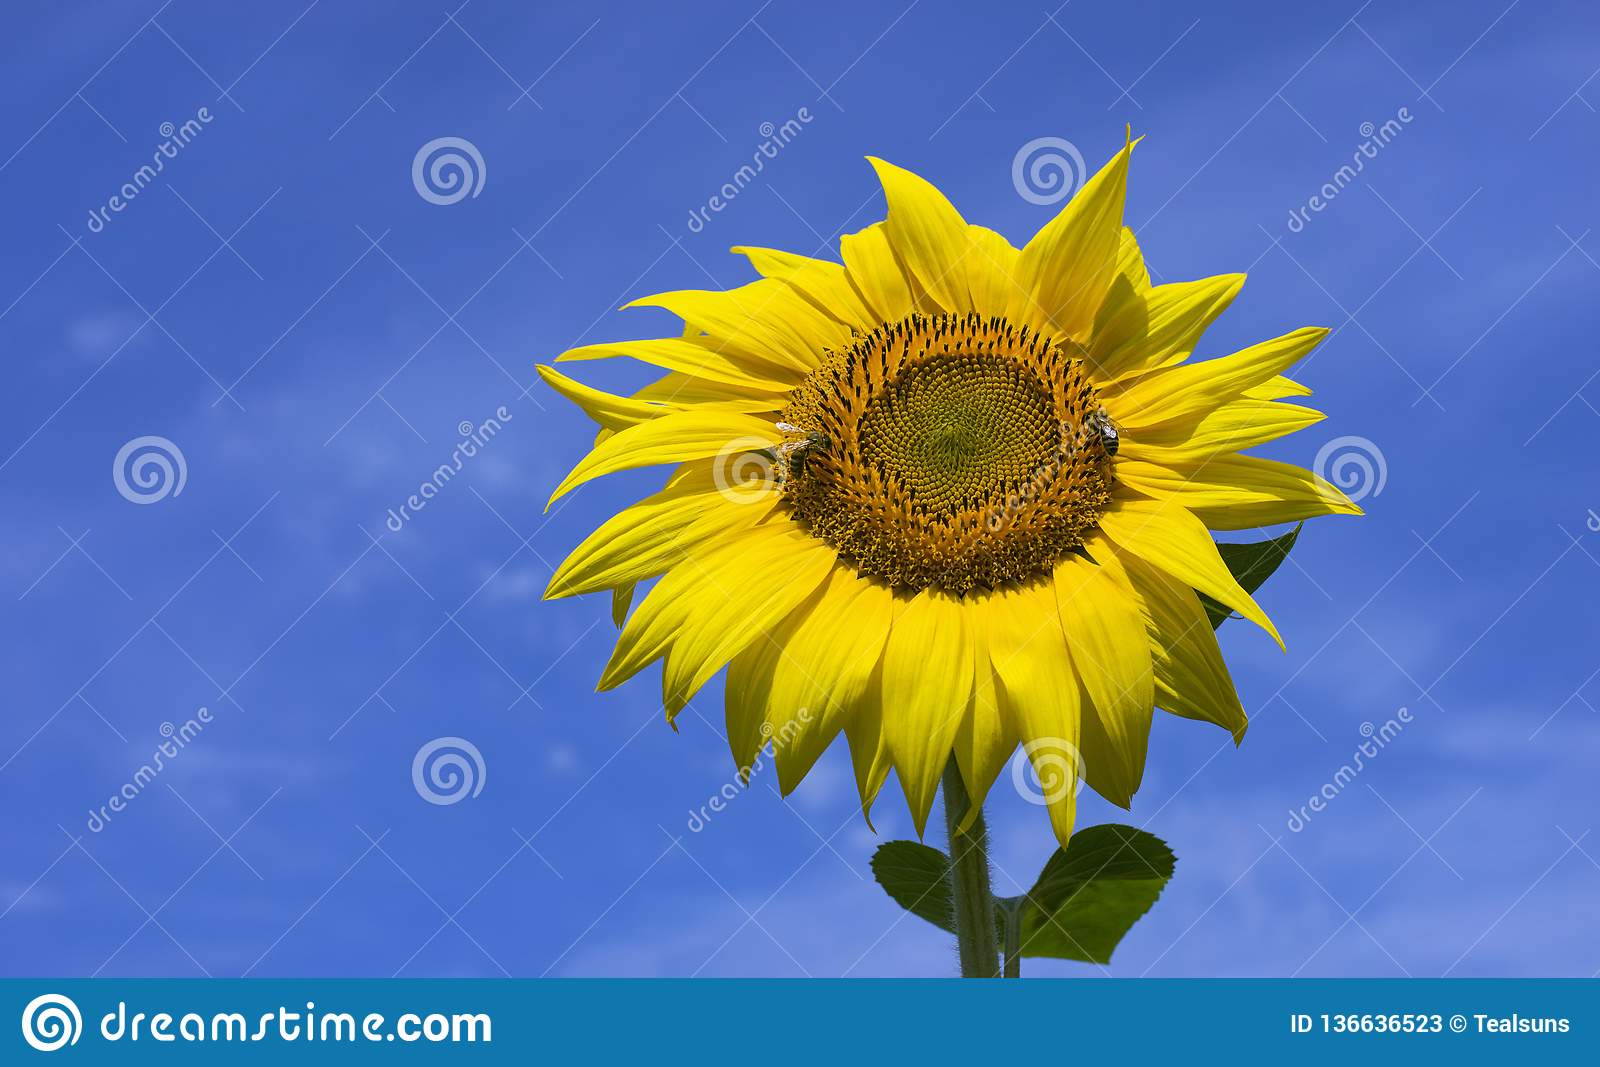 Two bees collect nectar on sunflower.